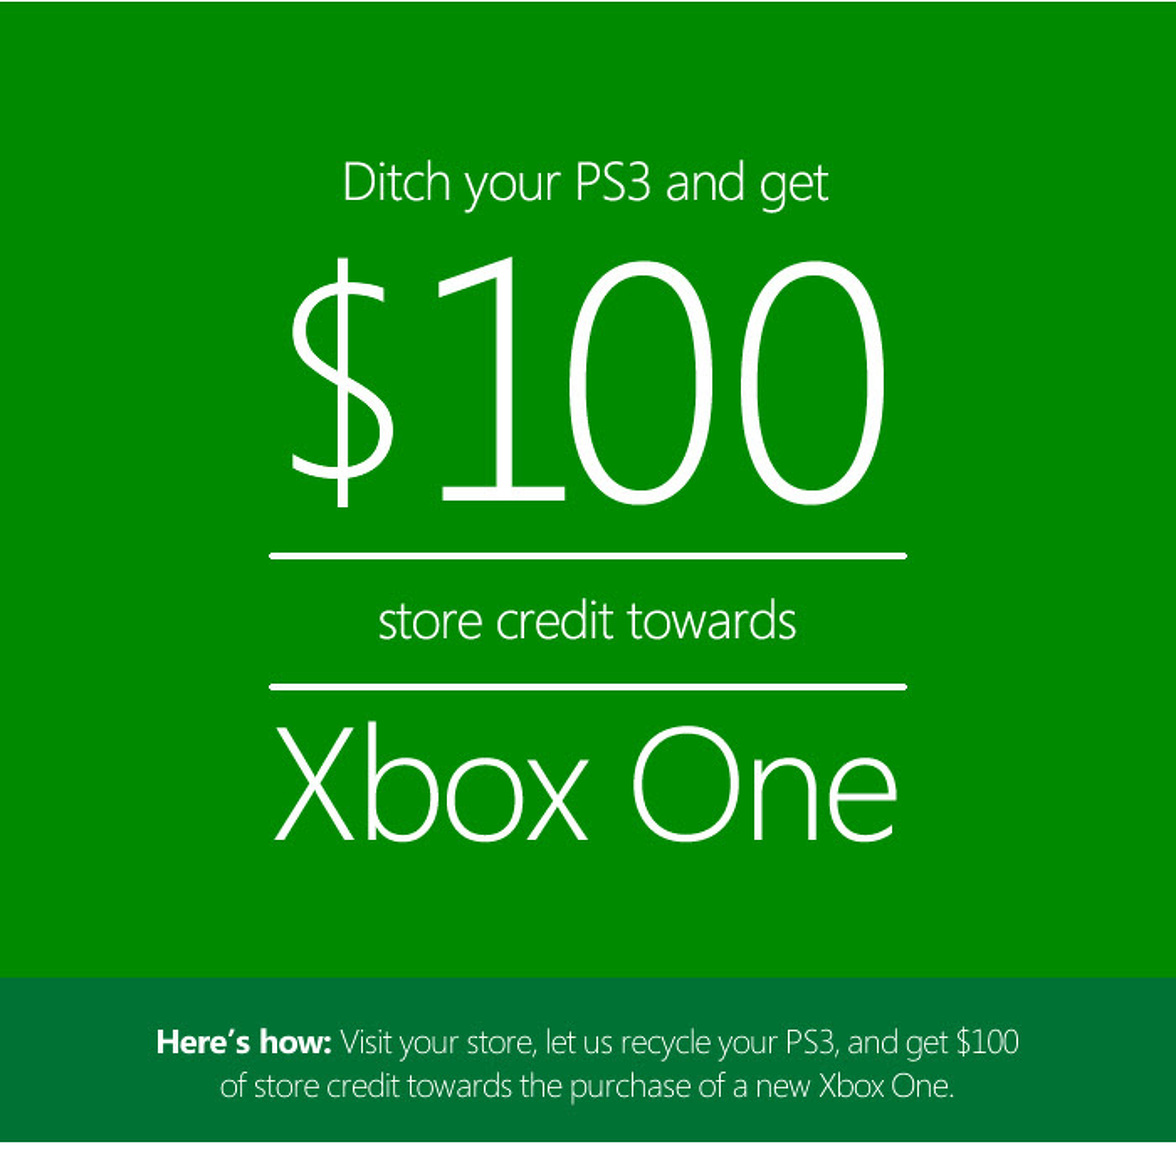 Ditch Your PS3 and Microsoft Will Give You $100